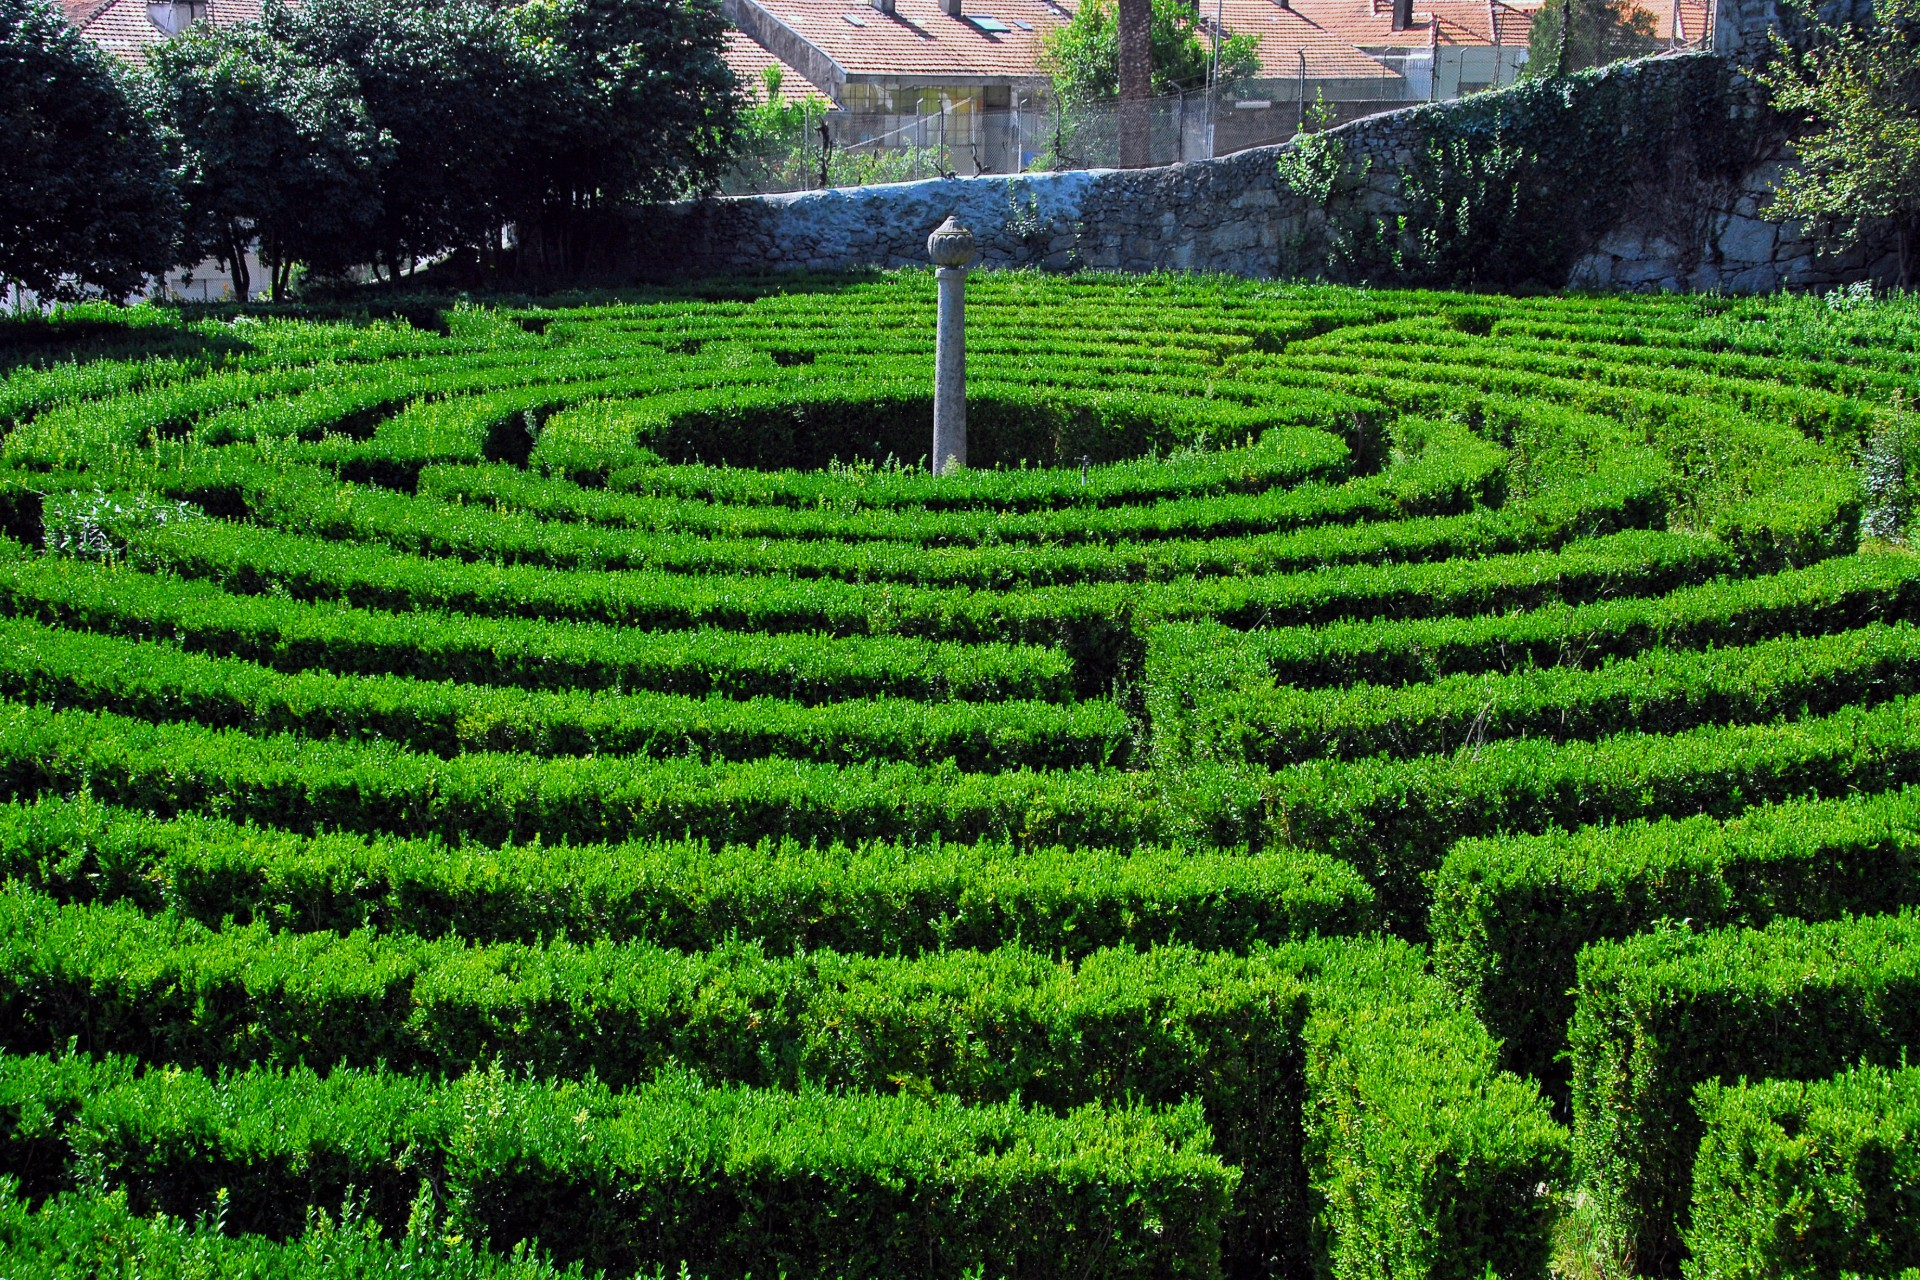 What to visit in Portugal: 10 Secret Gardens in Porto - Parque de São Roque what to visit in portugal What to visit in Portugal: 10 Secret Gardens in Porto Campanh   Parque de S  o Roque da Lameira Jardins 4 1